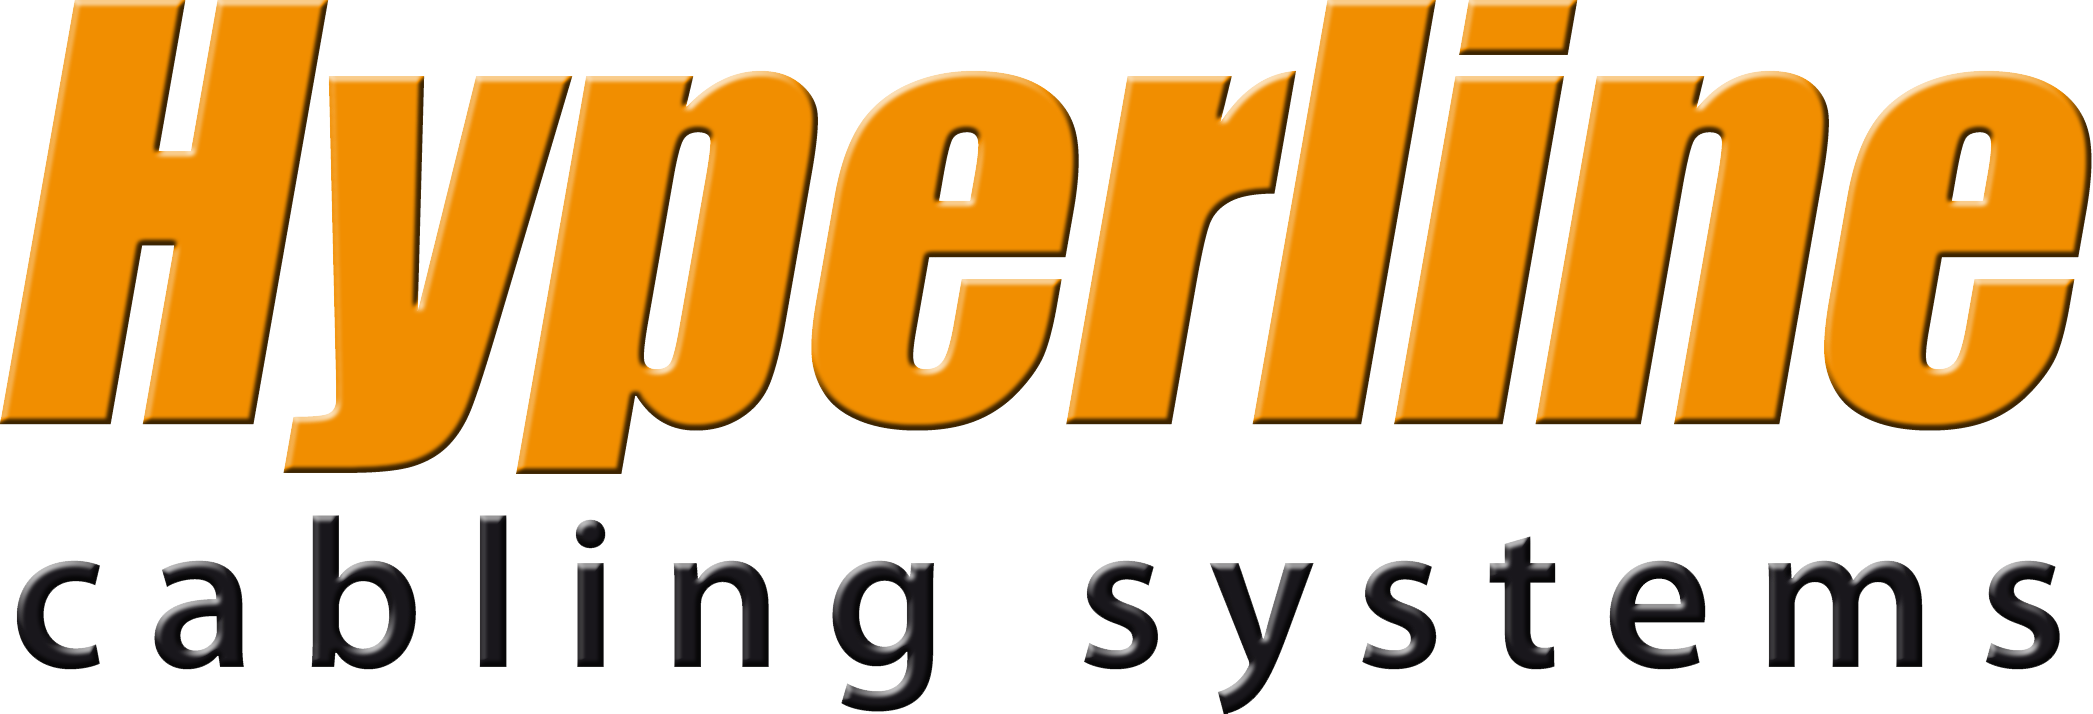 Hyperline Logo